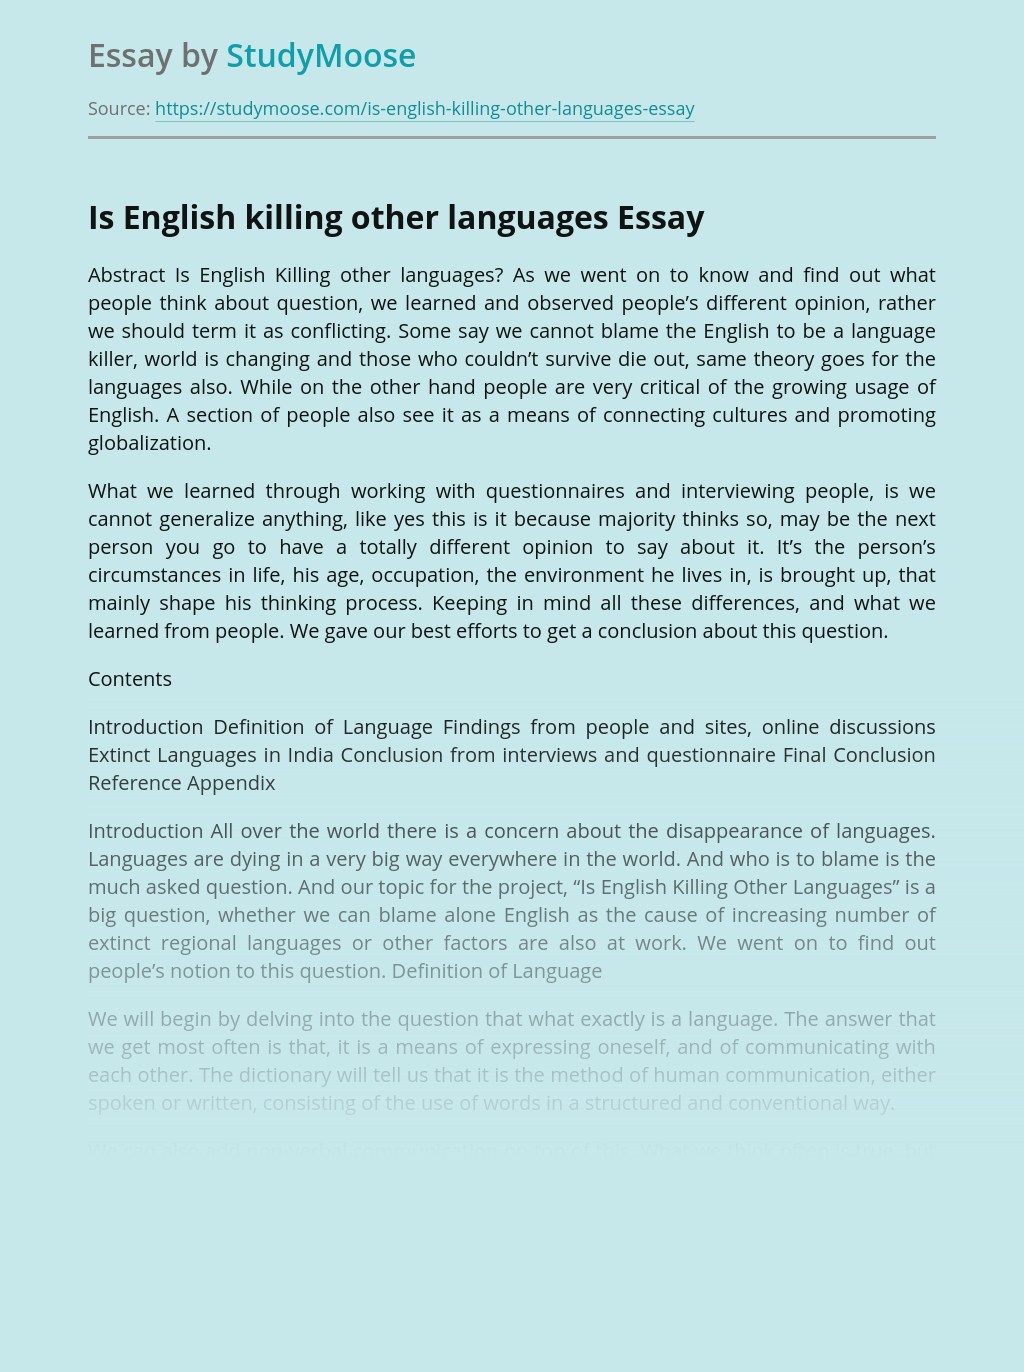 Is English killing other languages